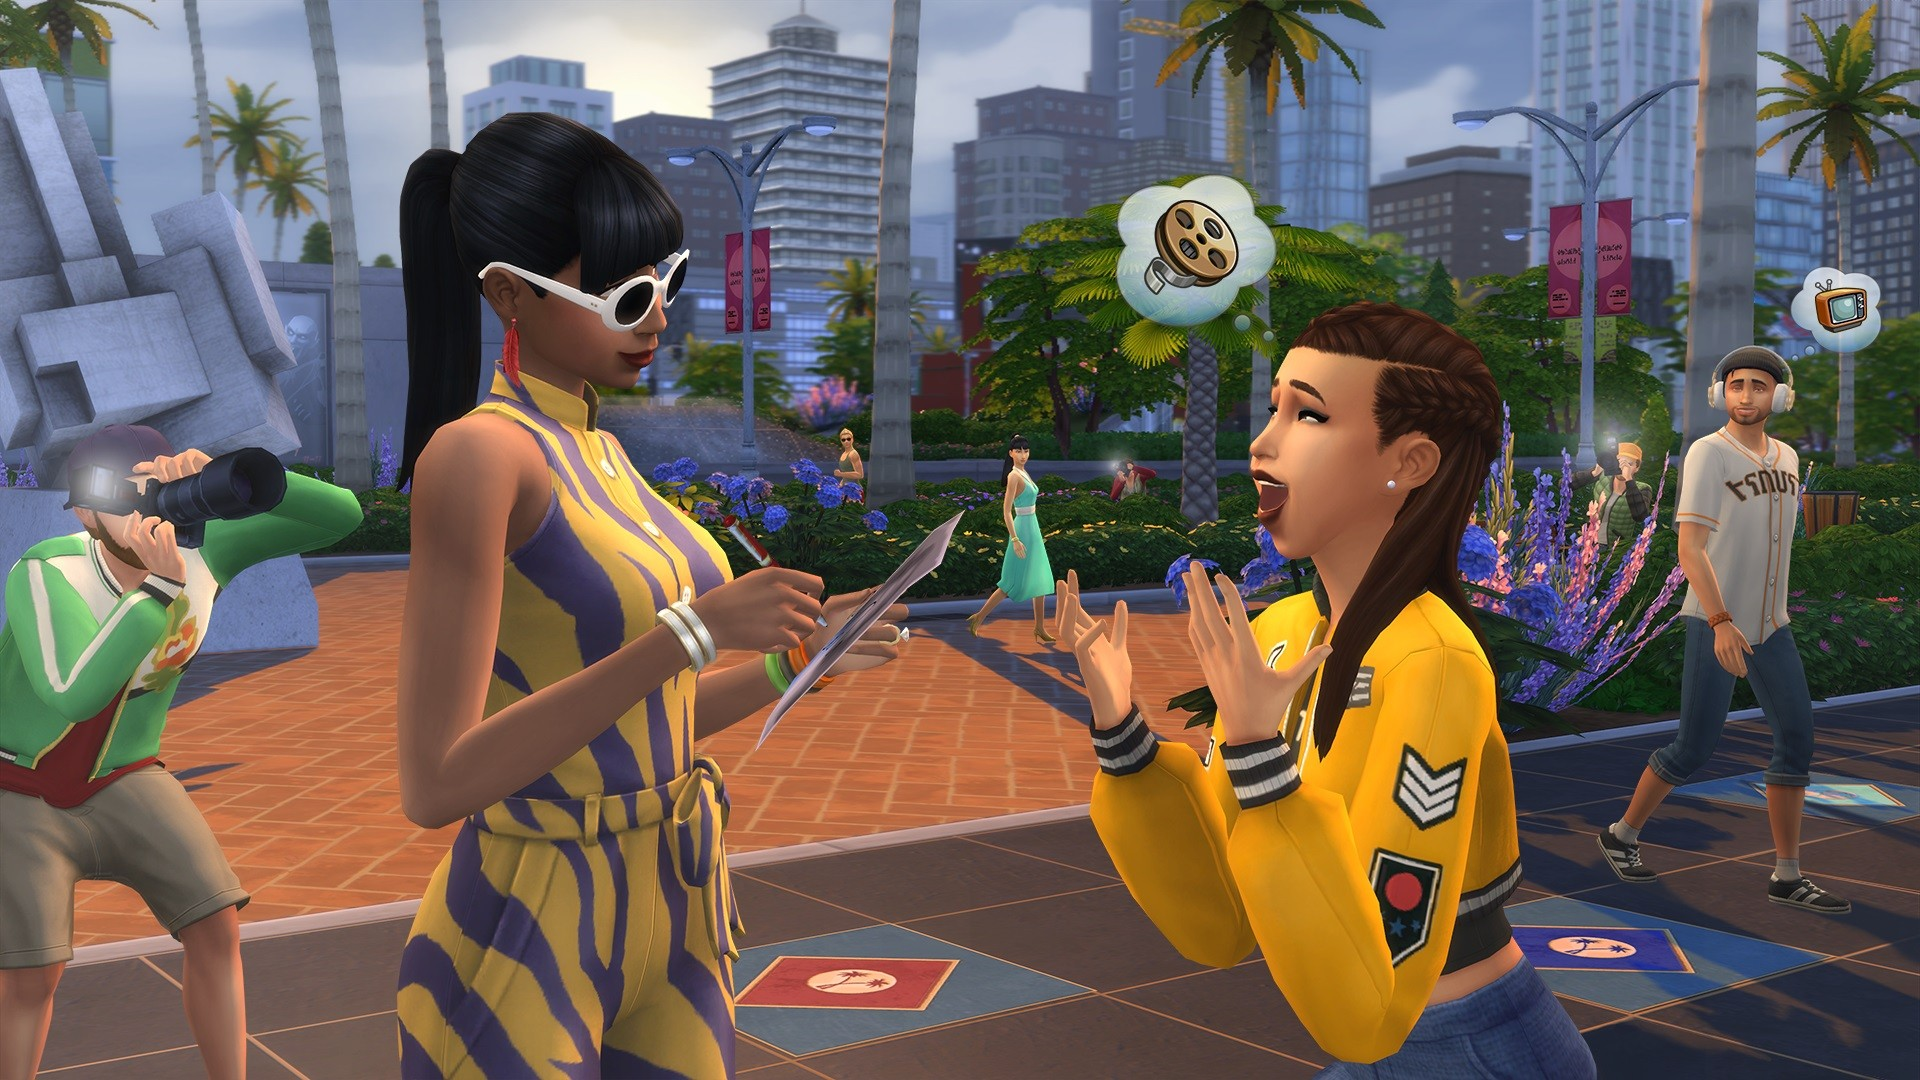 The Sims 4 Get Famous v1 47 49 1020 Free Download - Ocean Of